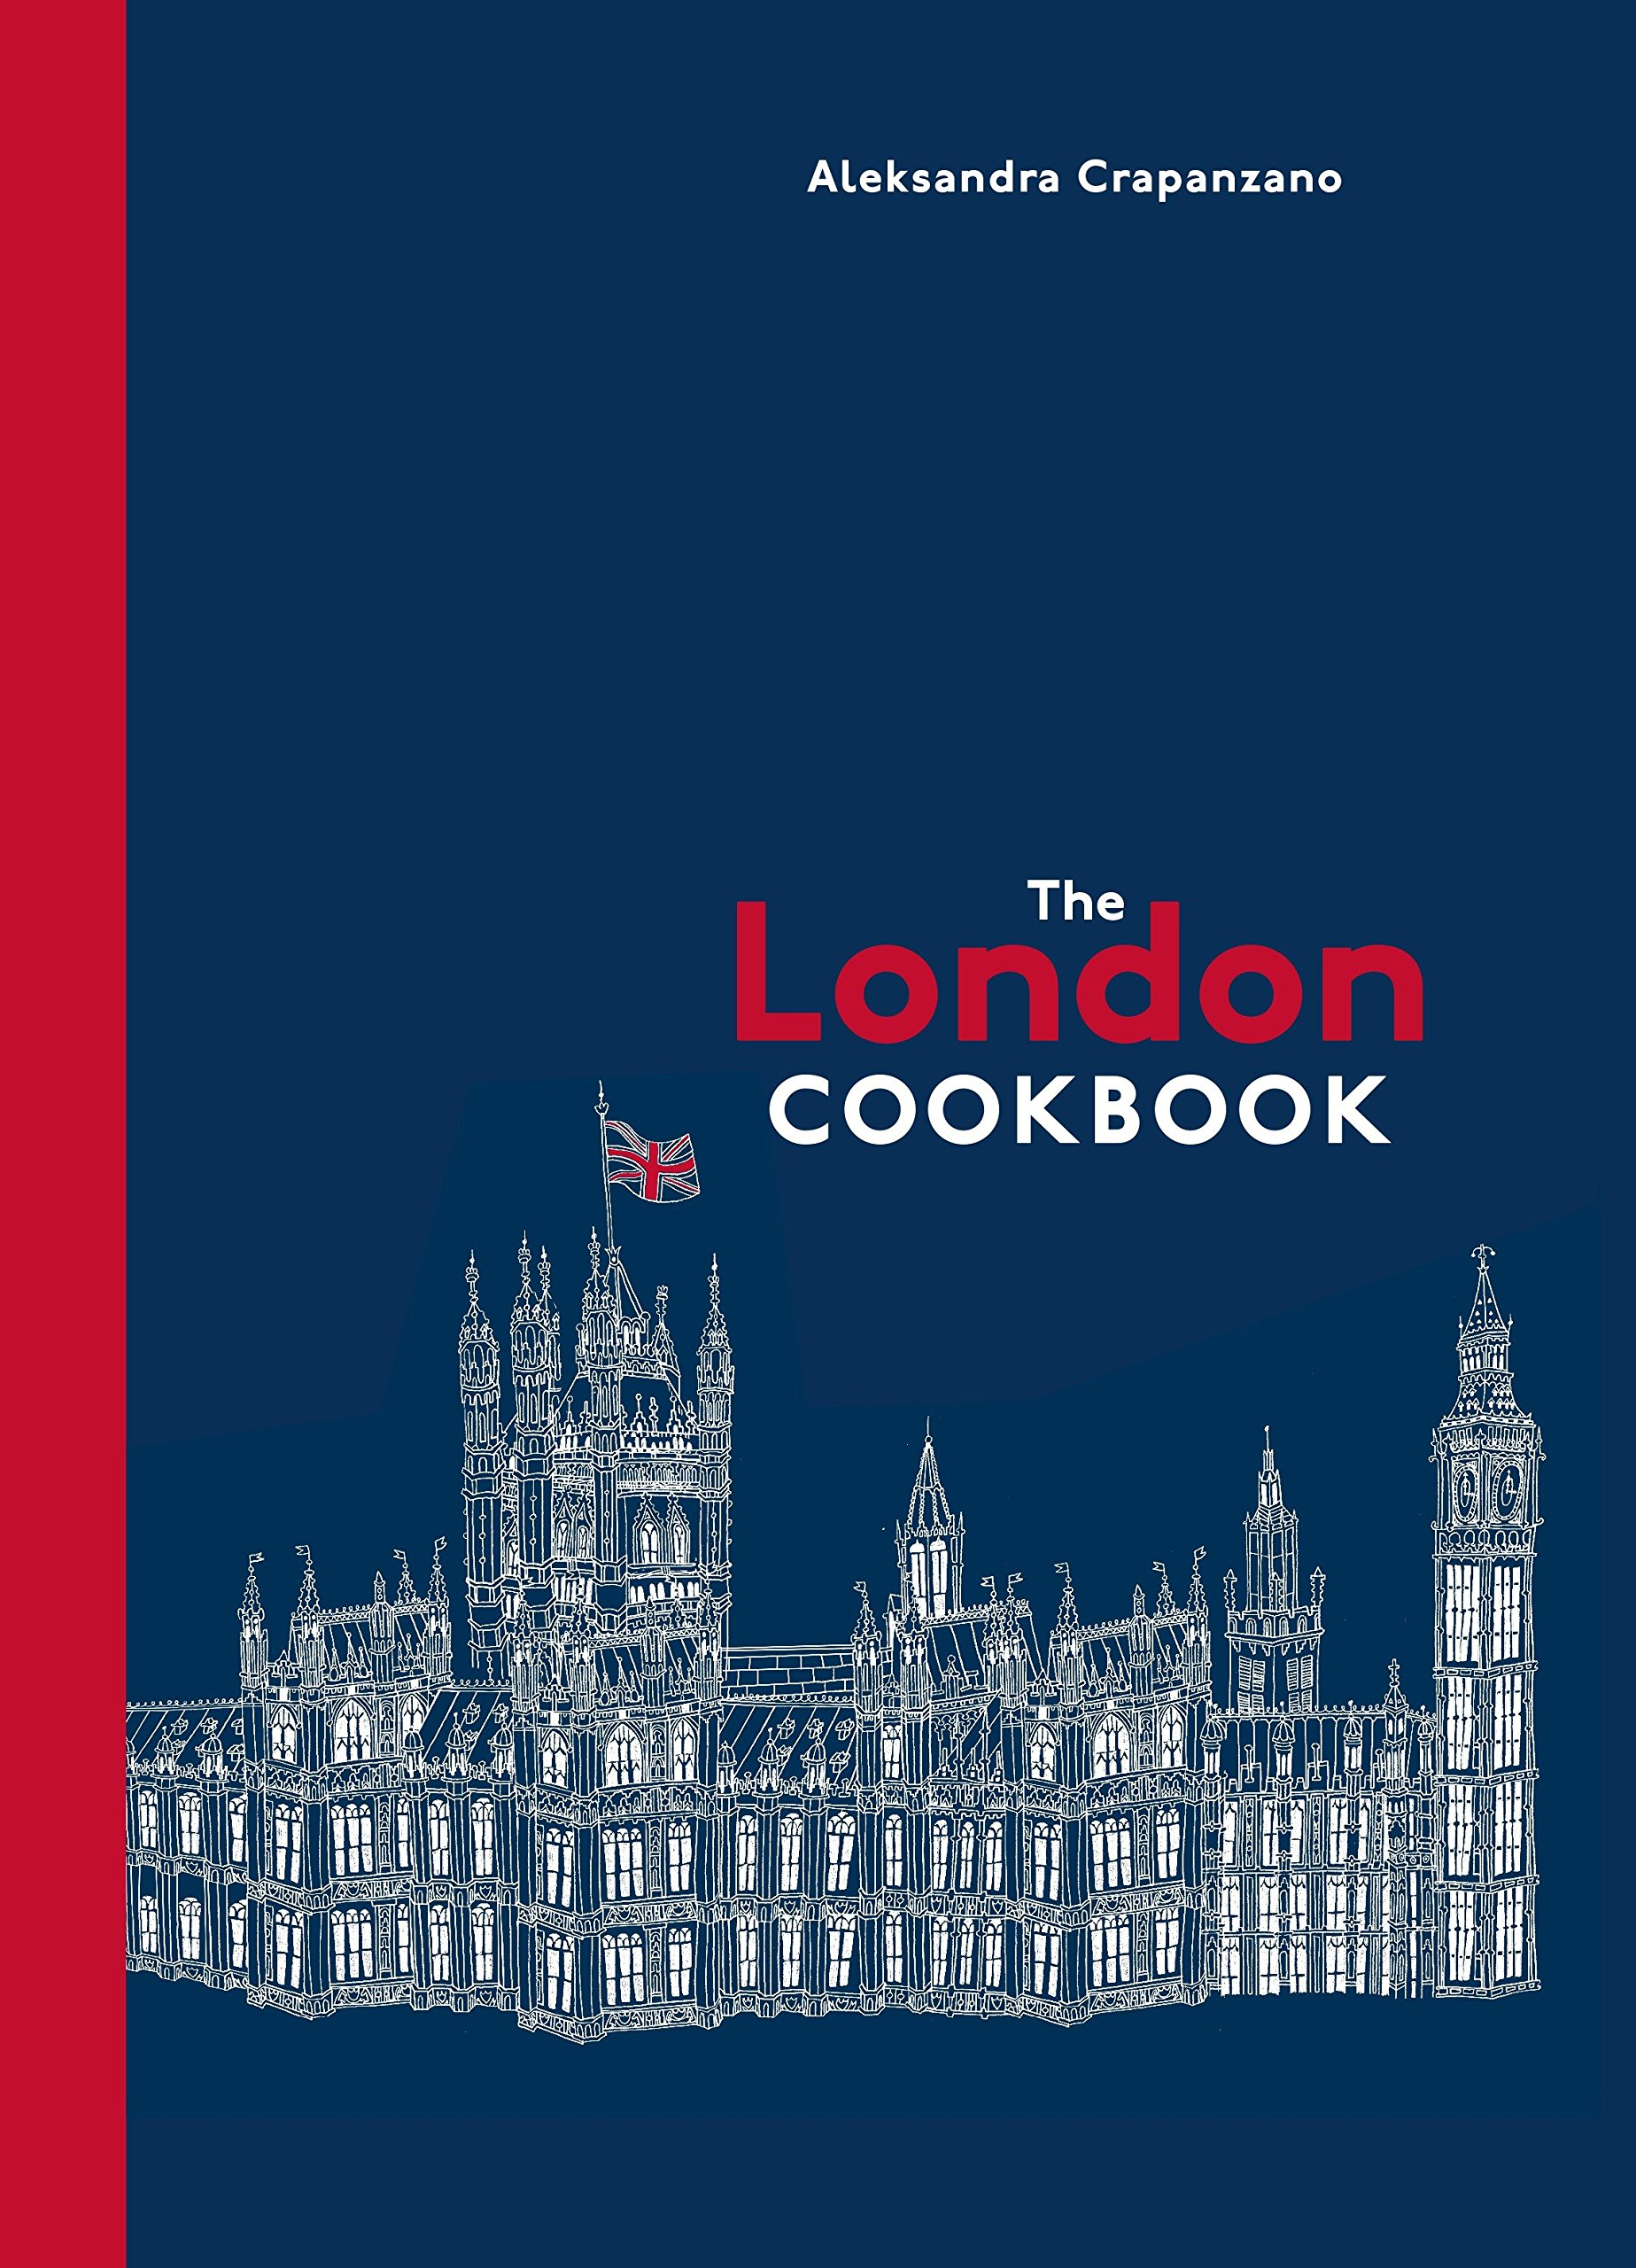 The London Cookbook: Recipes from the Restaurants, Cafes, and Hole-in-the-Wall Gems of a Modern City pdf